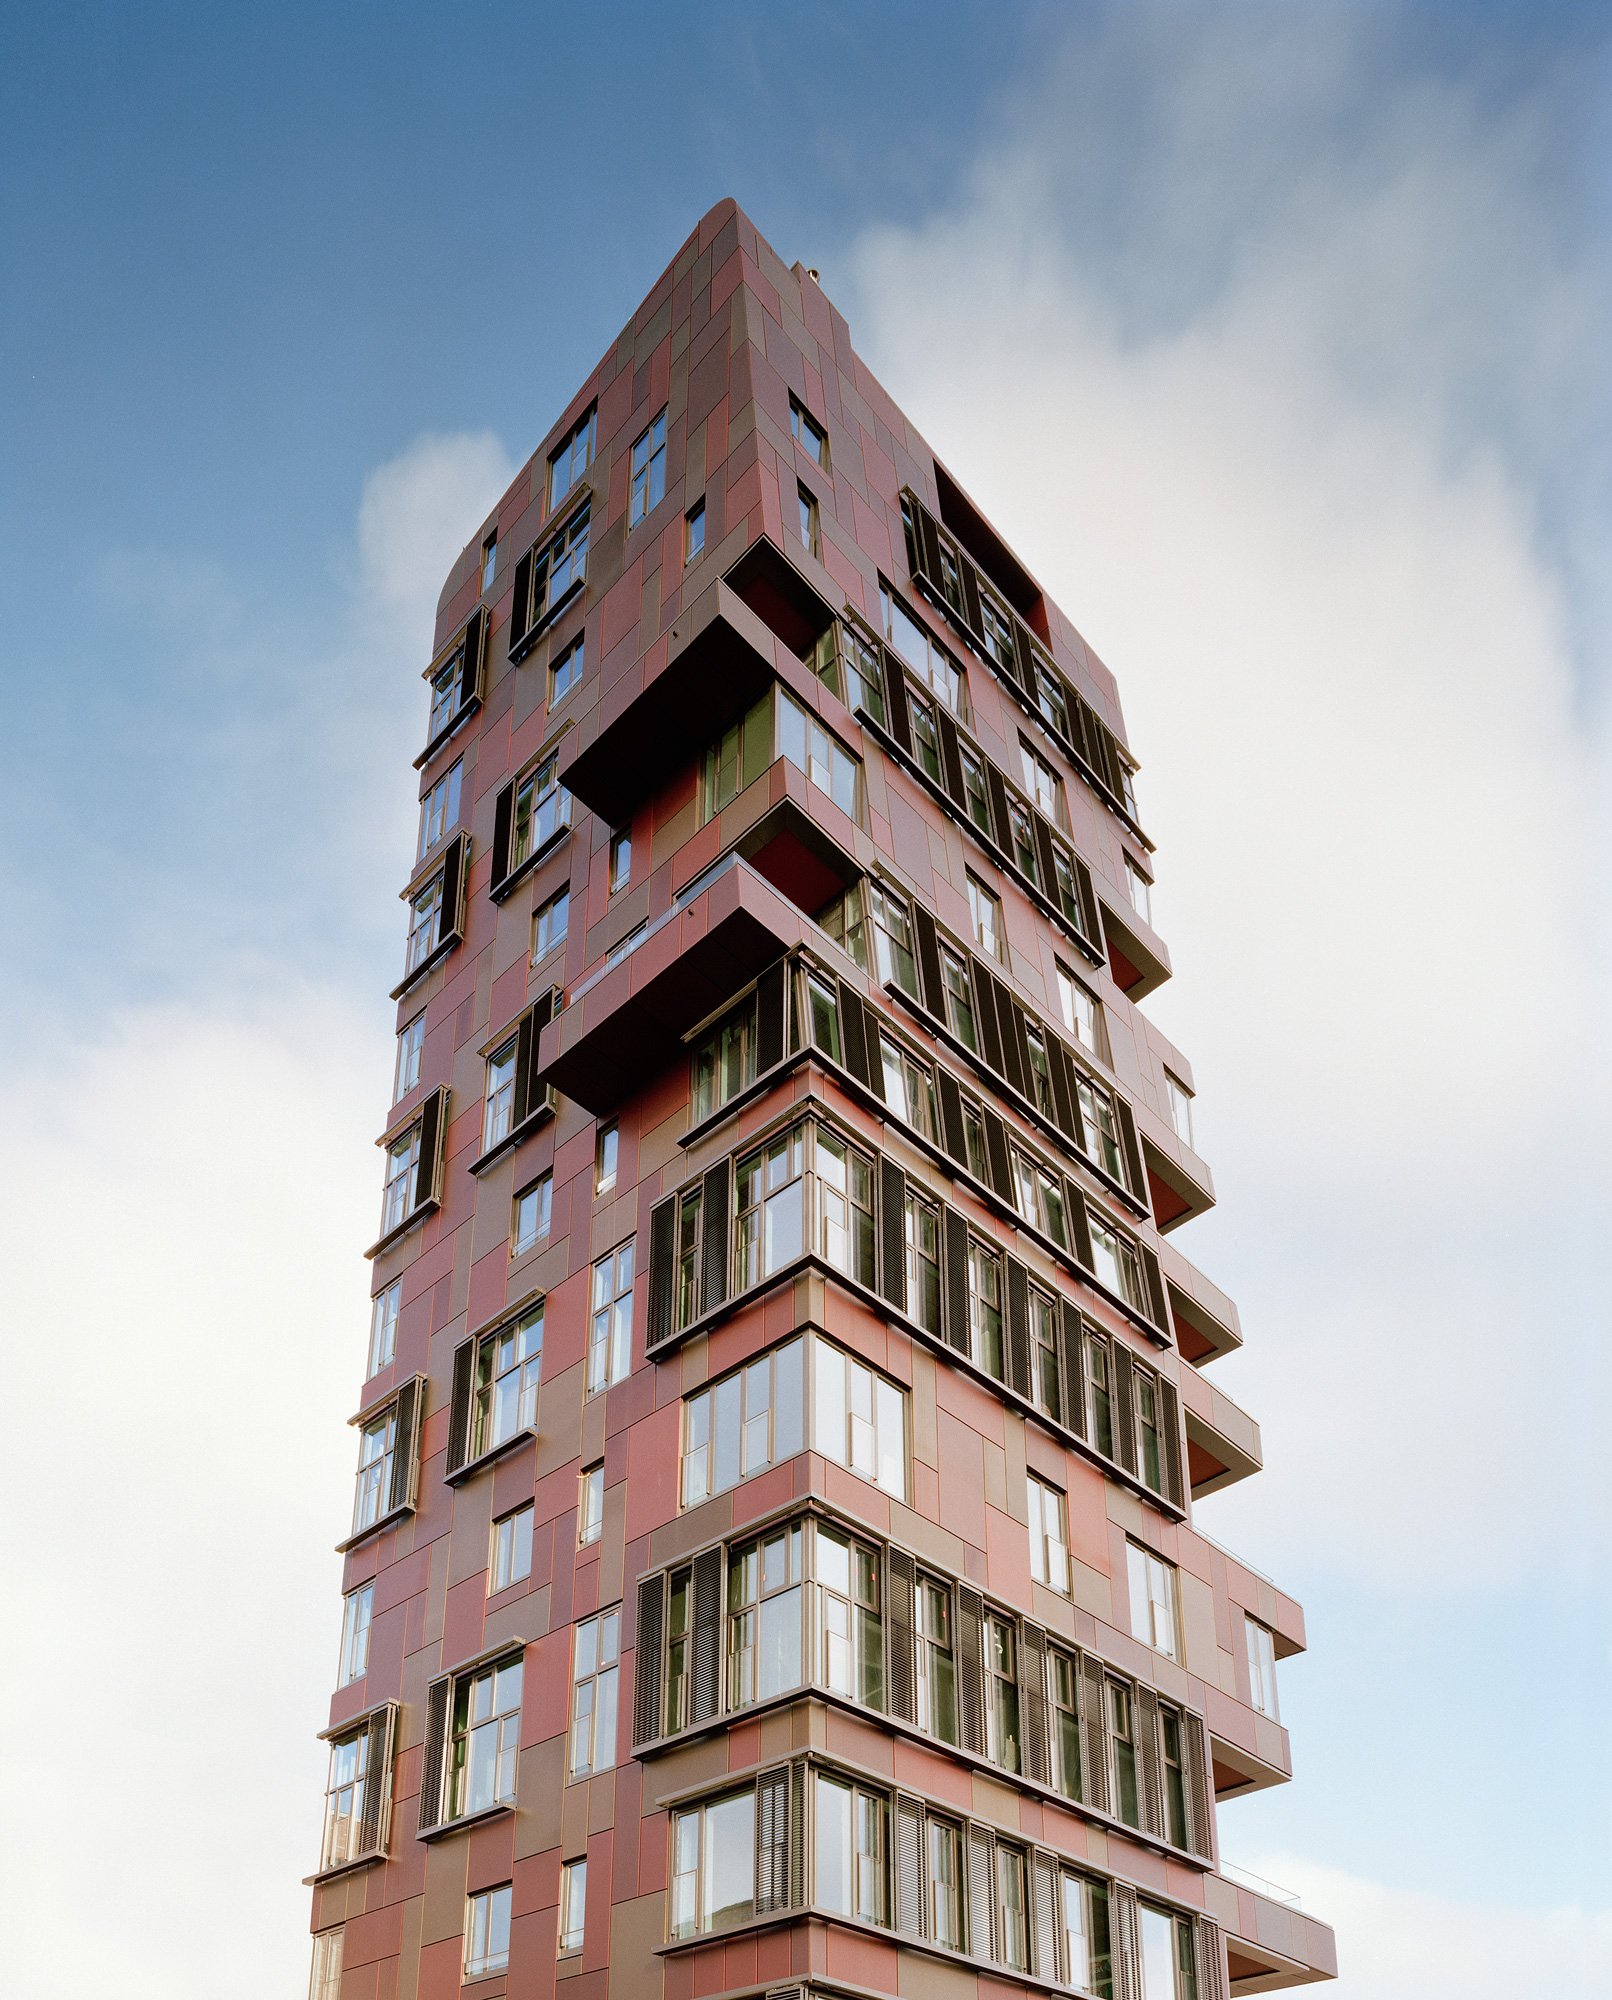 Cinnamon Tower © Dorfmueller Klier